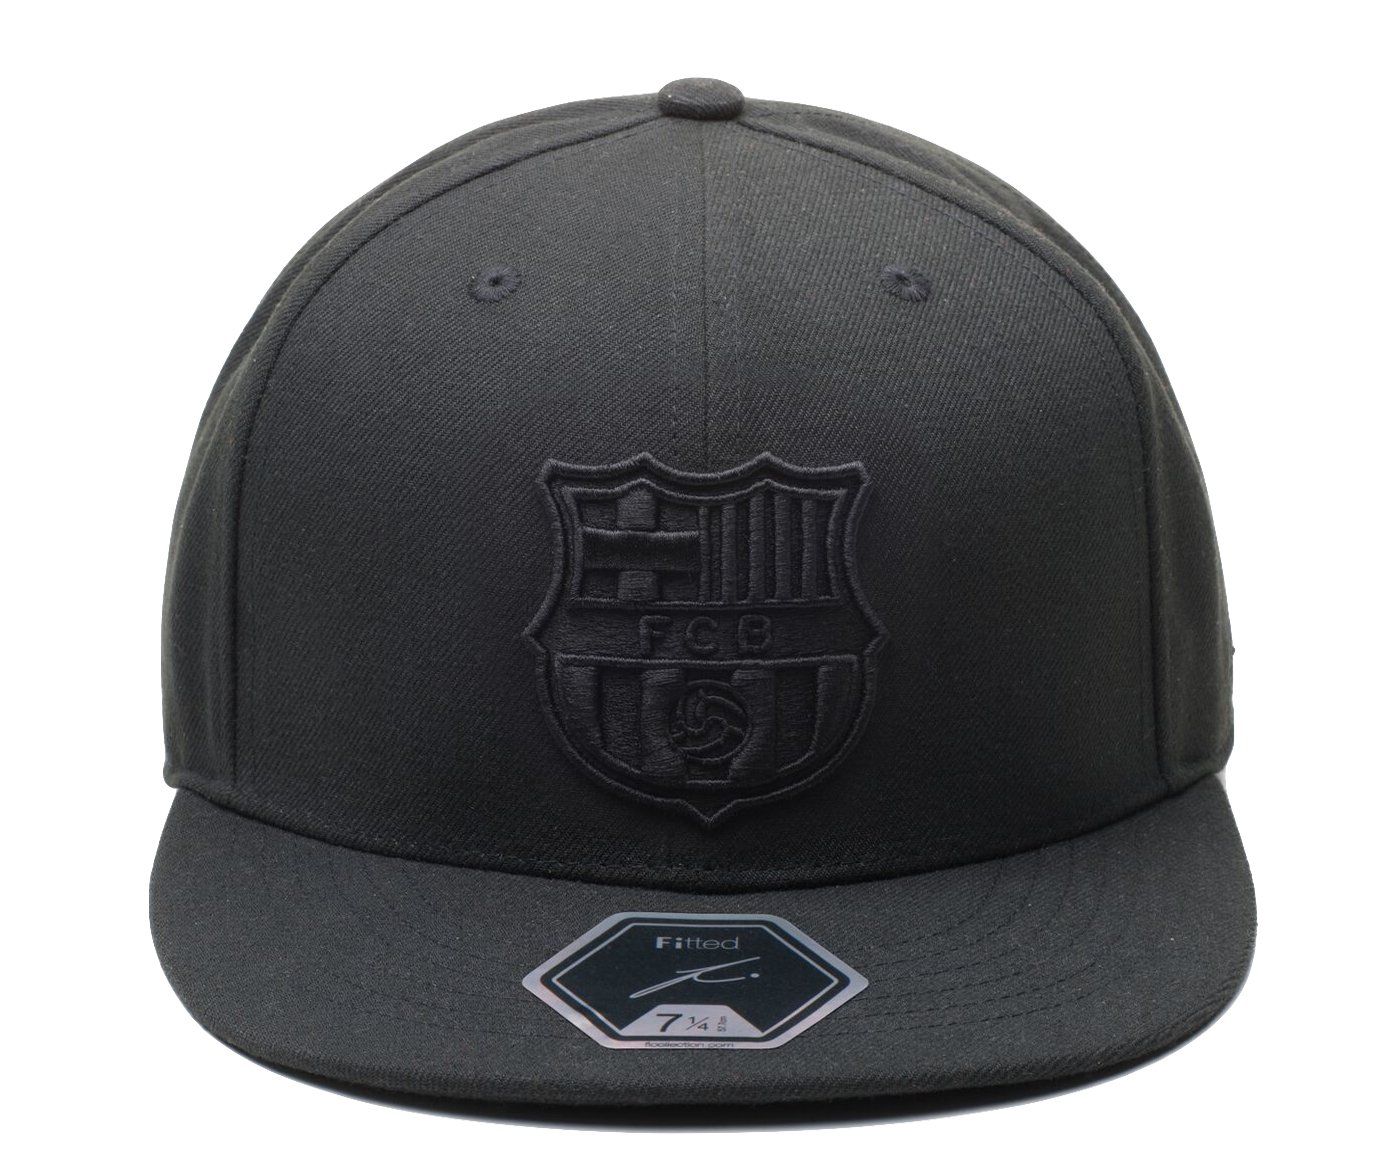 Amazon.com   Fi Collection FC Barcelona Officially Licensed Blackout True  Fitted Cap (7 5 8)   Sports   Outdoors 8d14dbc2dc0